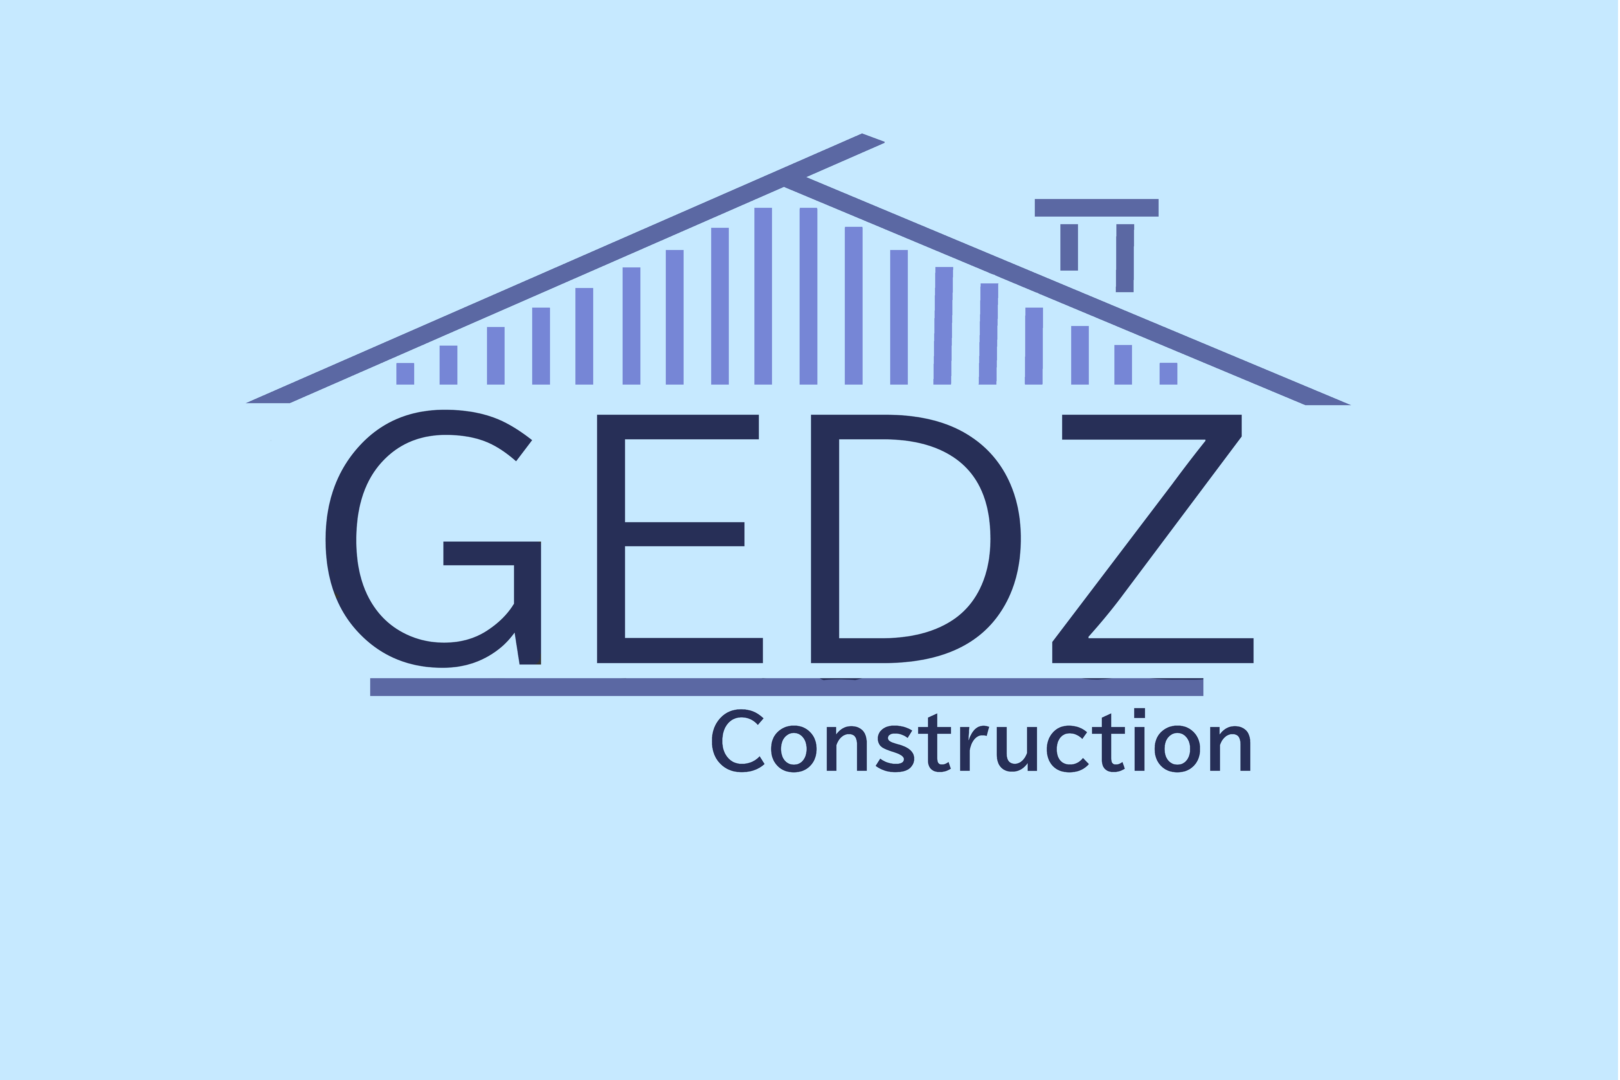 https://theranchalaska.com/wp-content/uploads/2020/04/GEDZ-Construction-3-1.png